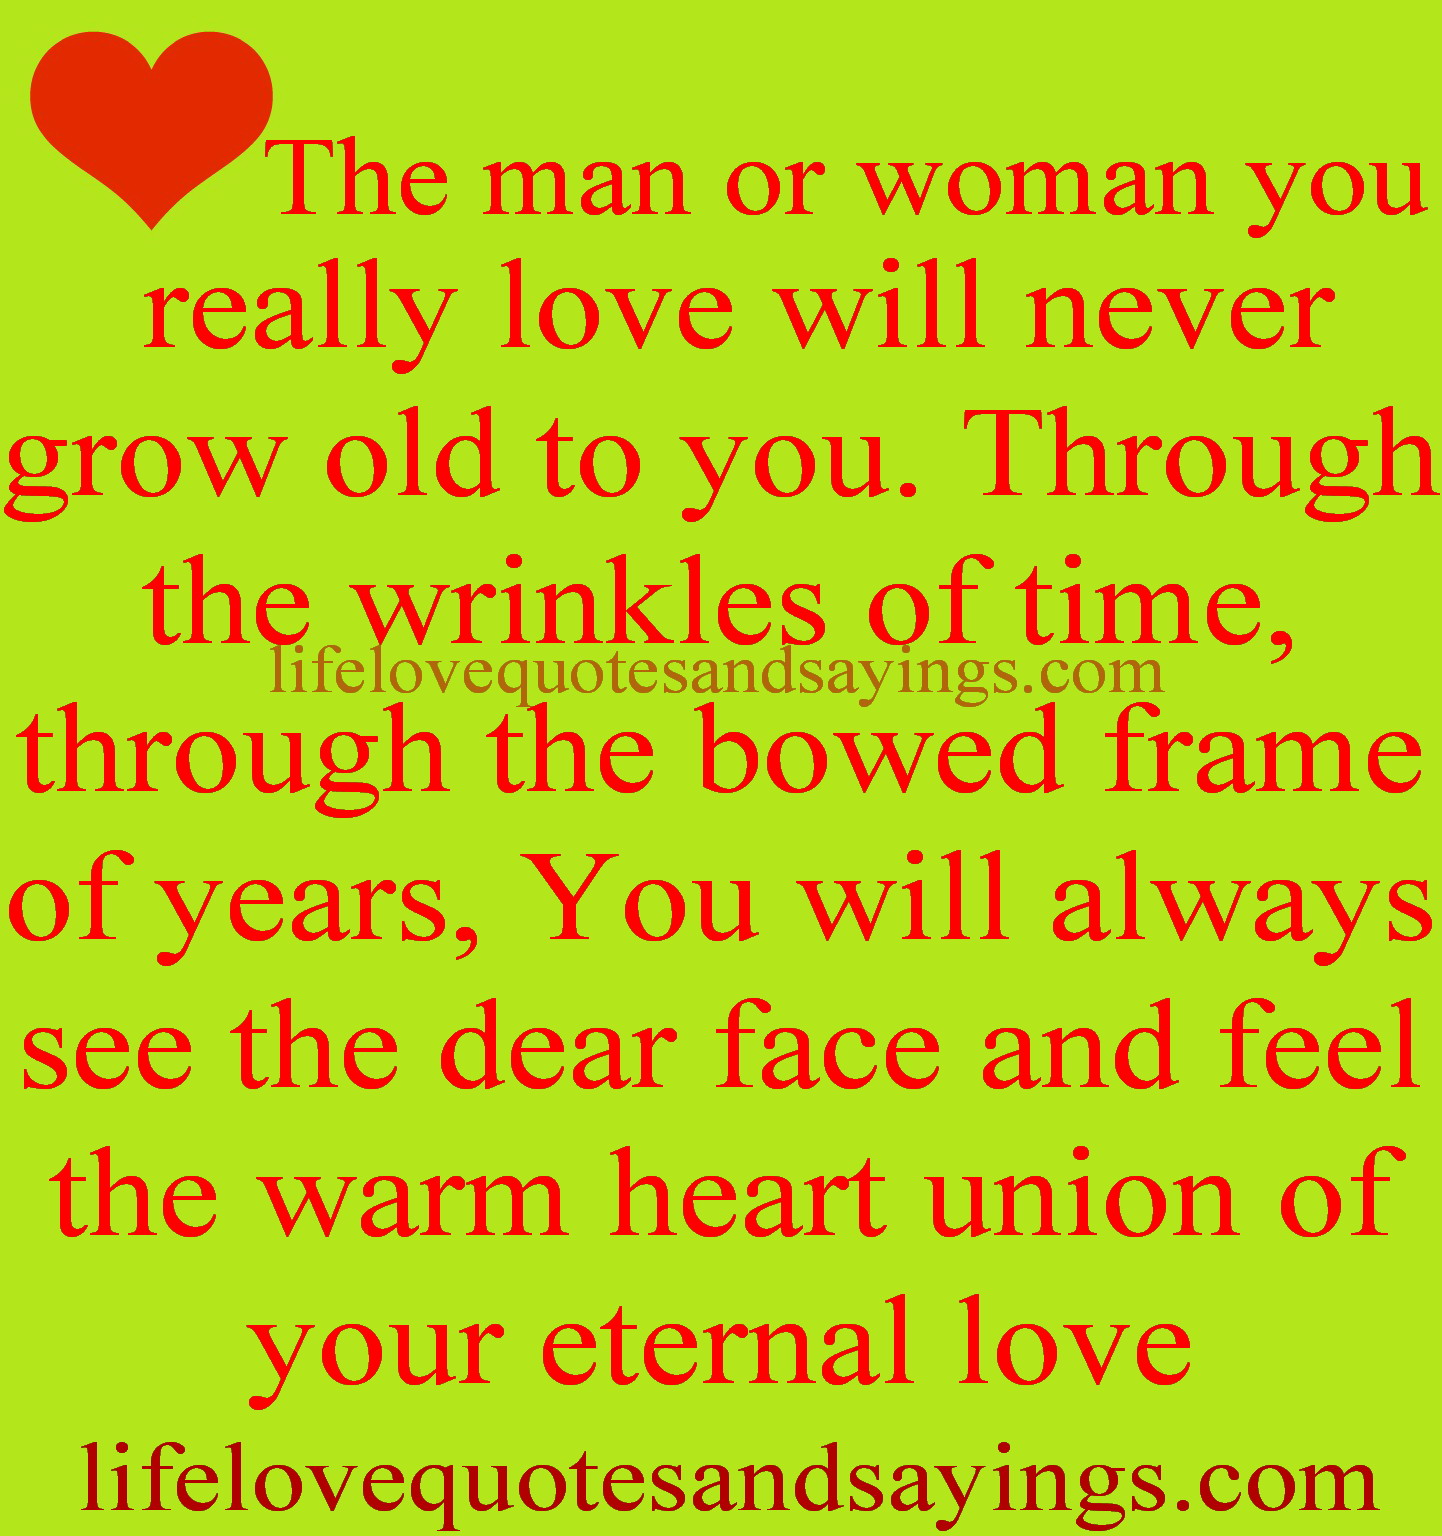 Html Quote: Famous Quotes About 'Eternal Love'